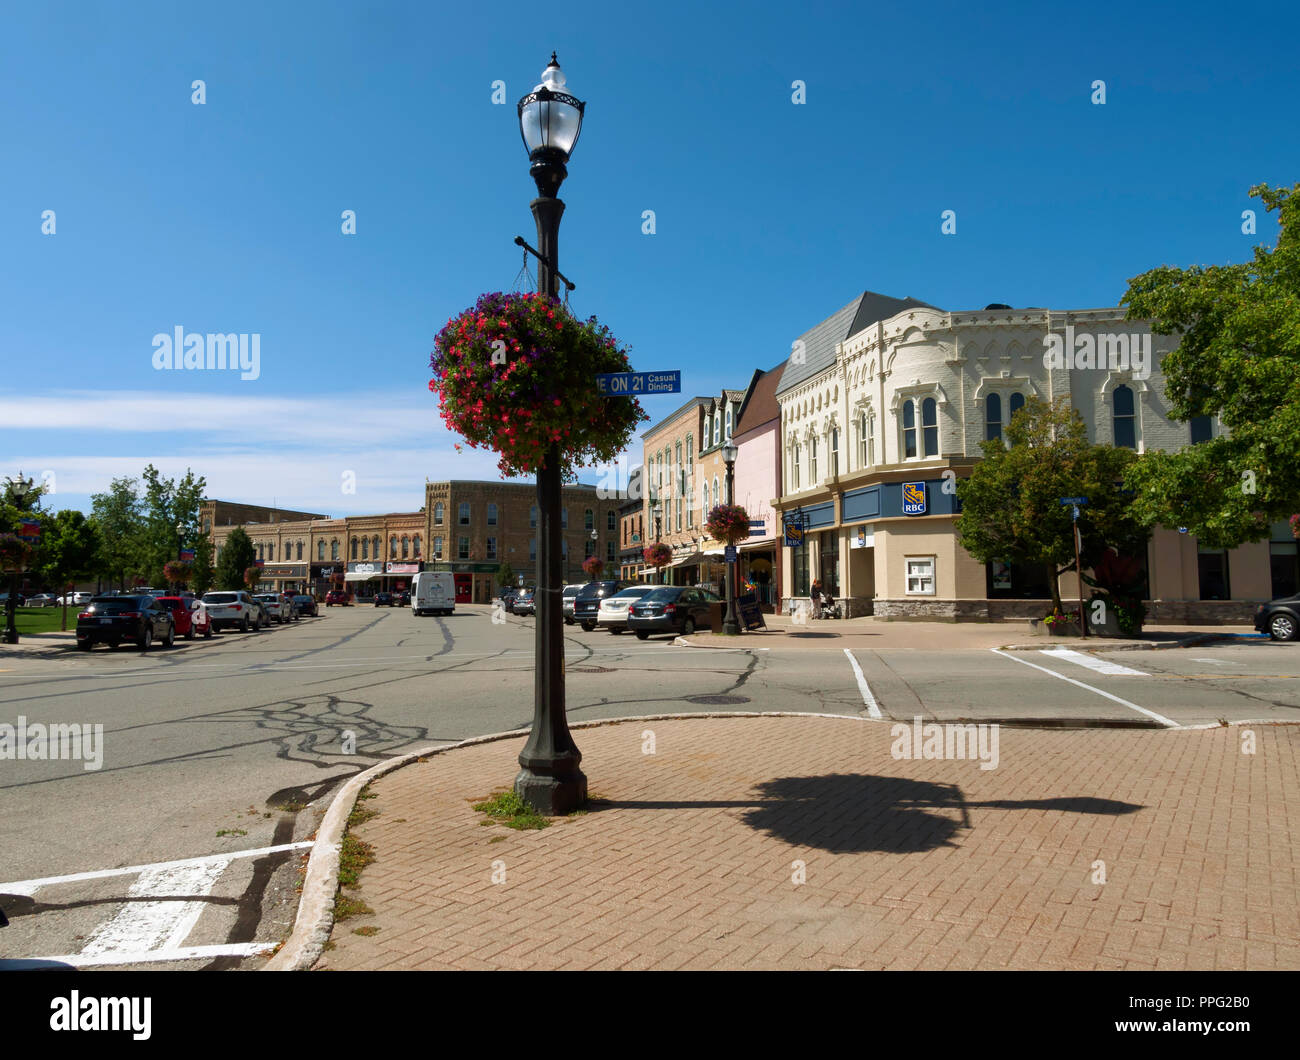 Courthouse Square, Goderich, Ontario. The main shopping and dining centre of Canada's Prettiest Town. - Stock Image